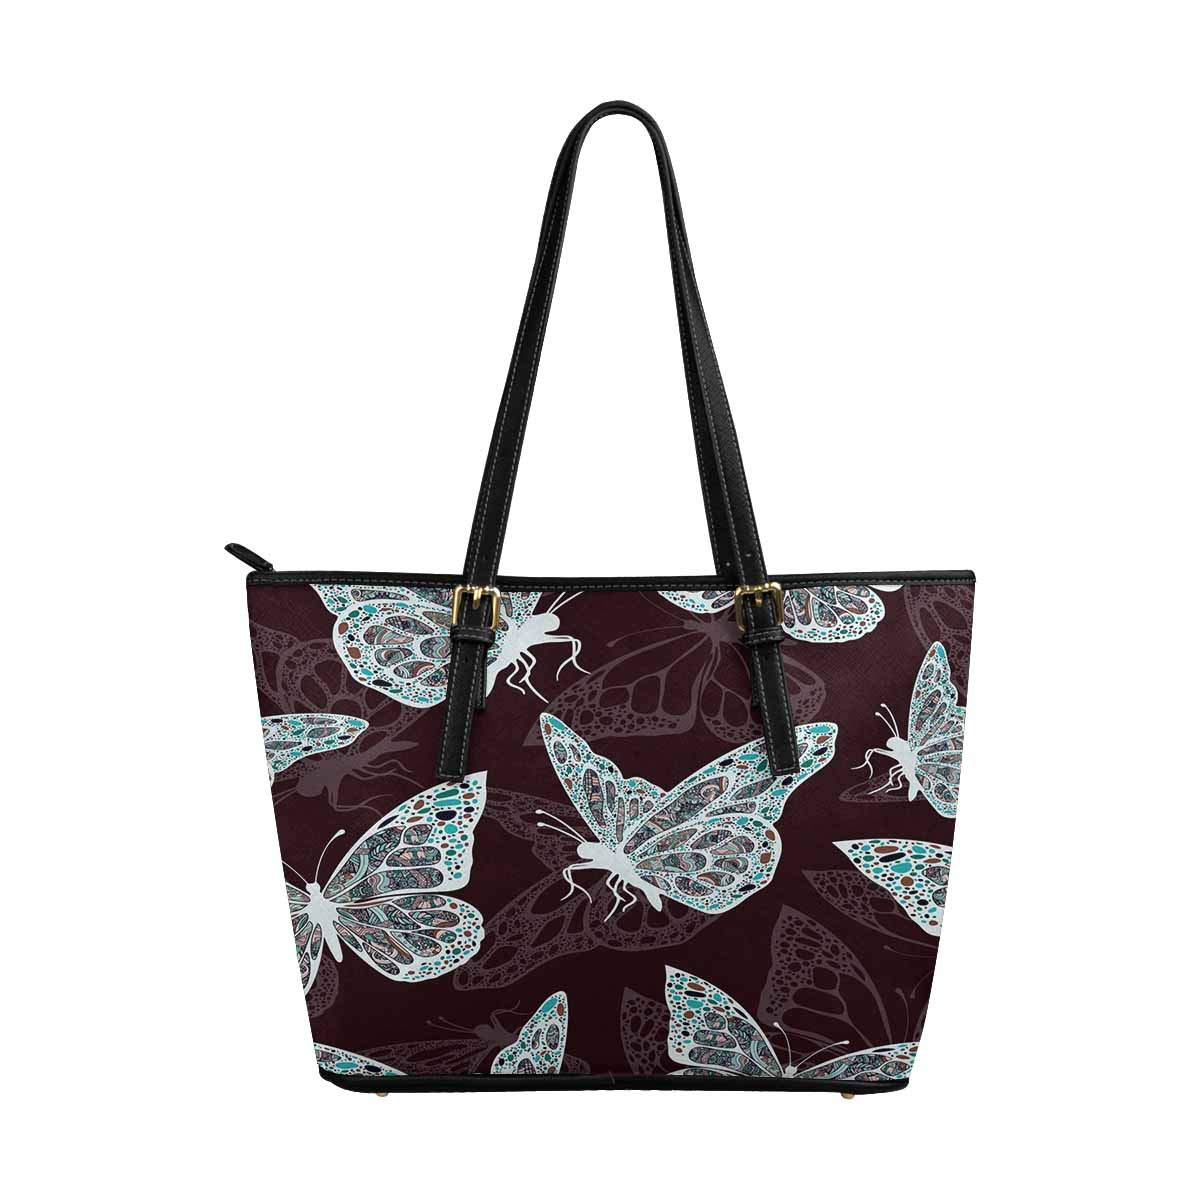 InterestPrint Women Totes Top Handle HandBags PU Leather Purse